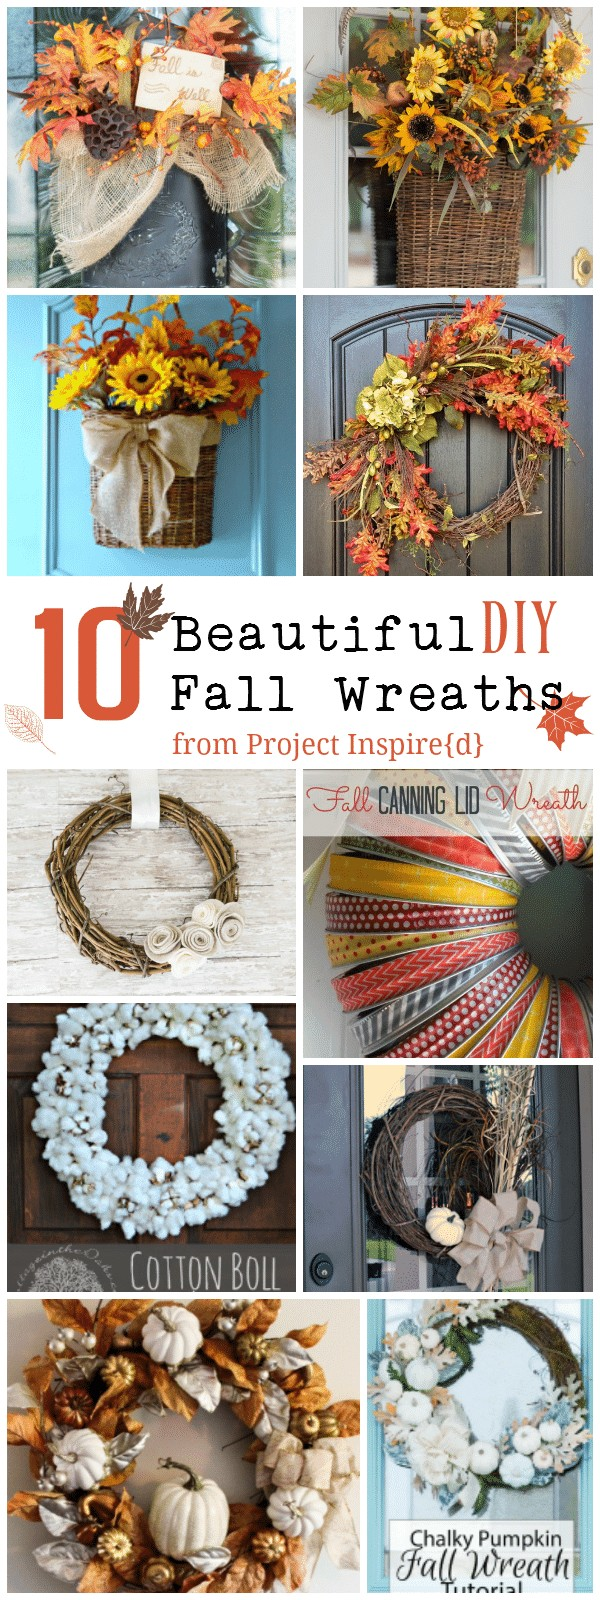 10 beautiful DIY fall wreaths from project inspired at cupcakesandcrinoline.com